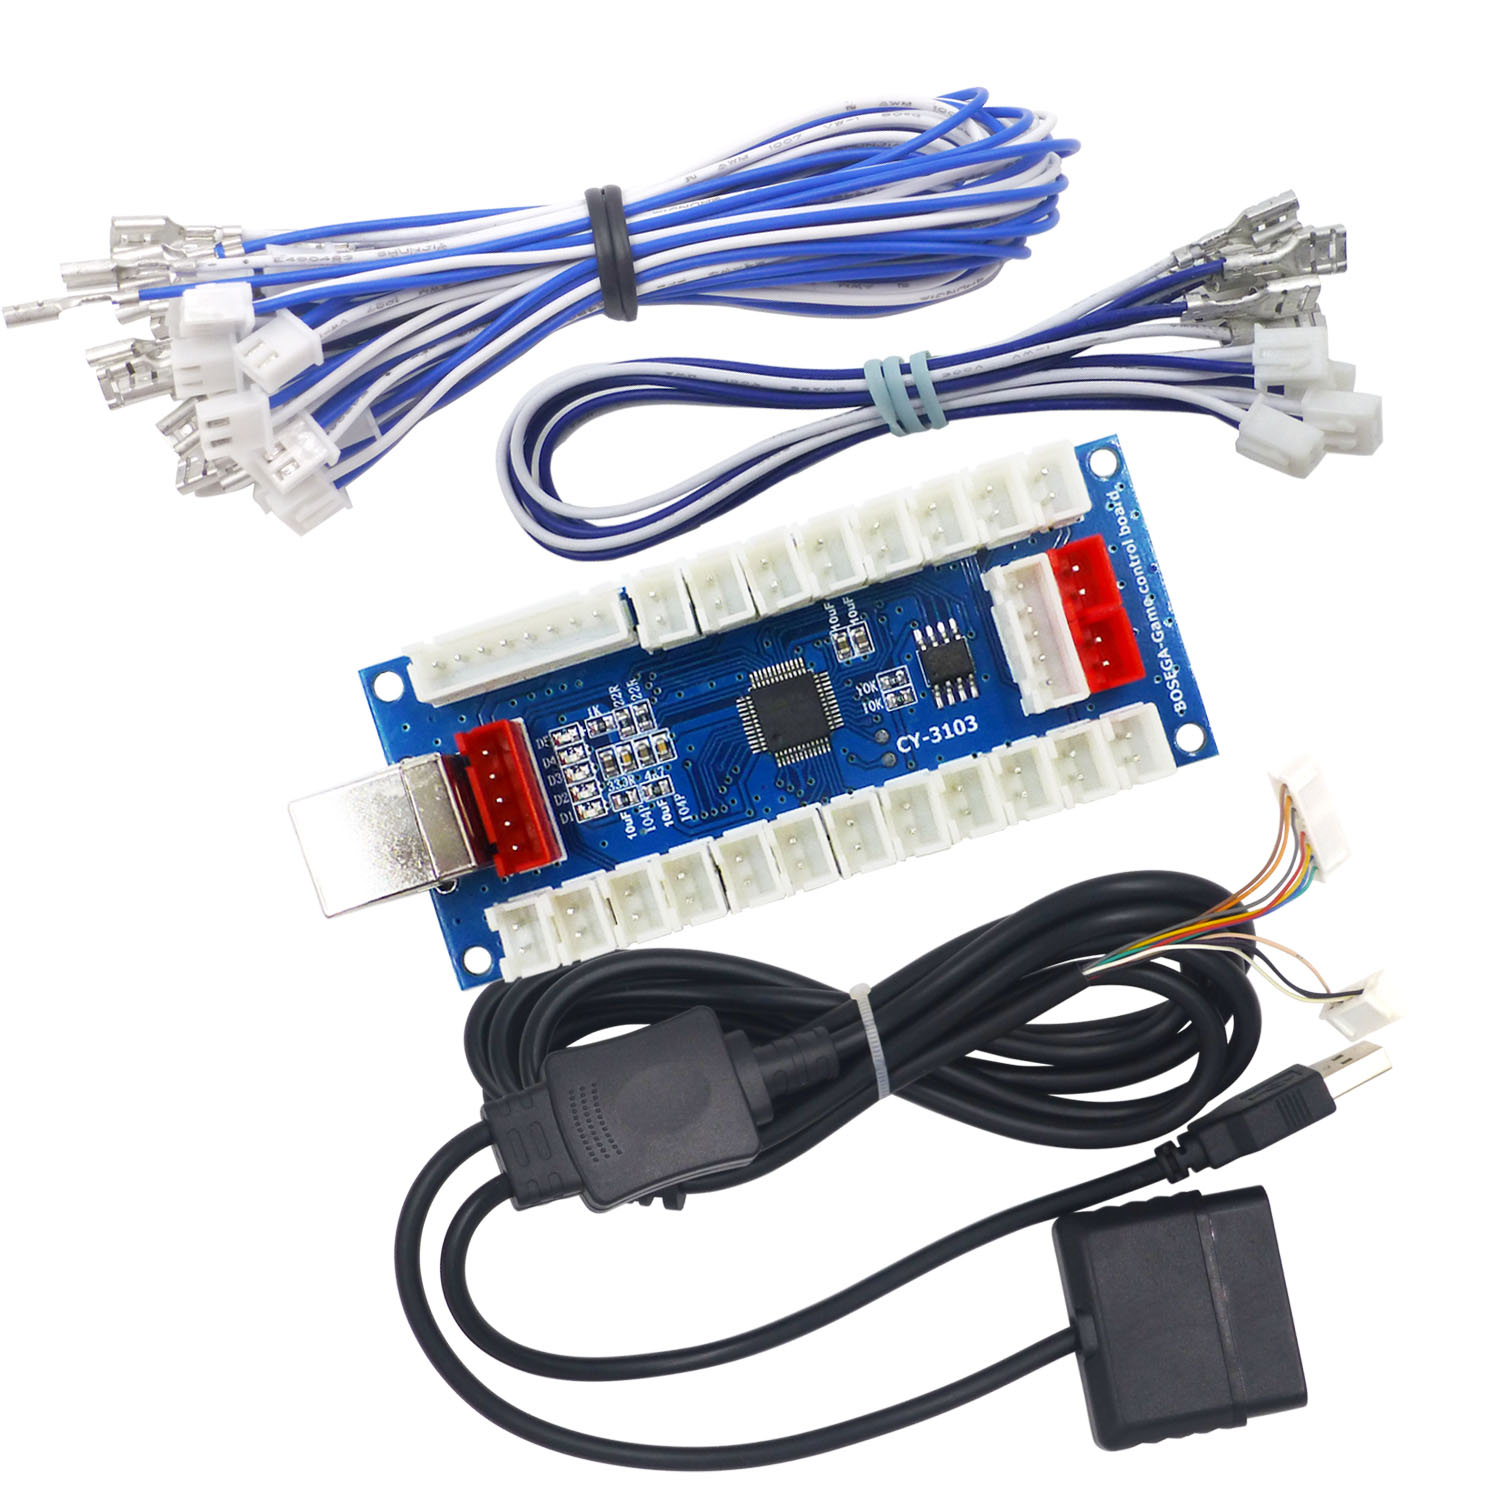 SJ@JX Arcade Controller PCB Board Encoder Zero Delay Joystick Button for PC Raspberry Pi PS2 PS3